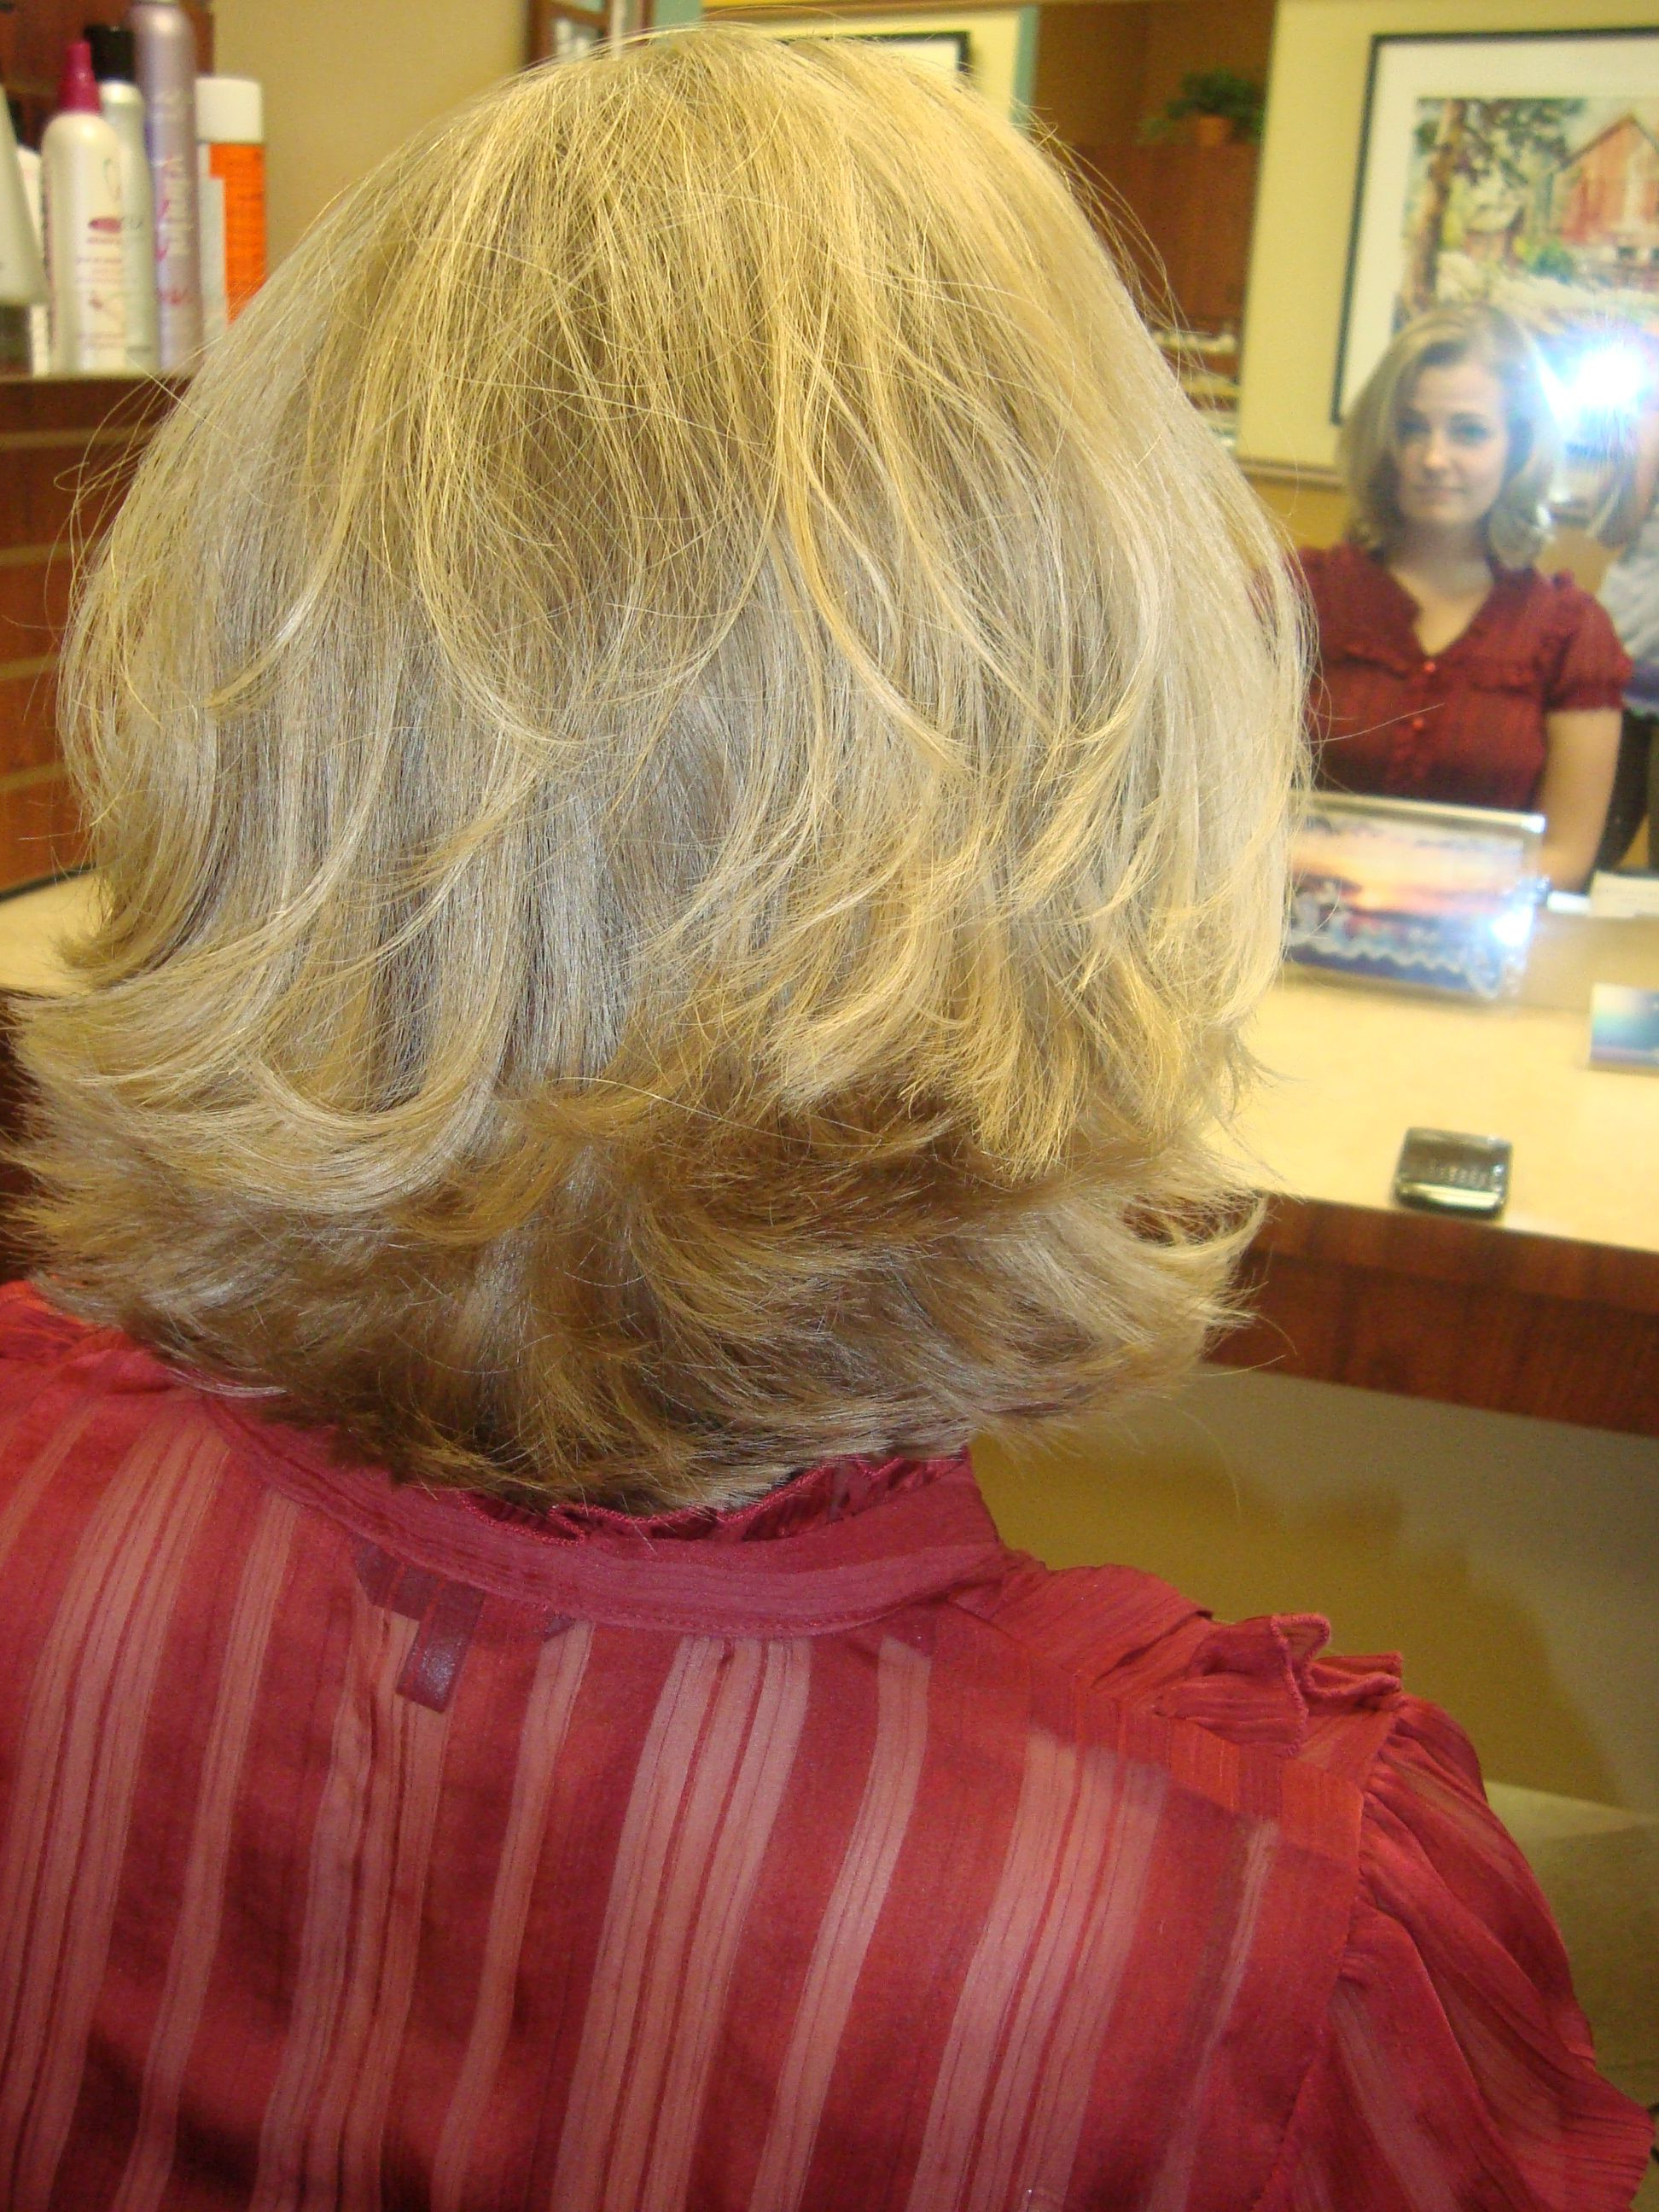 Famous Flipped Medium Hairstyles With Short, Thick, And Blonde Flipped Hair, Low Maintenance And Cute (View 10 of 20)